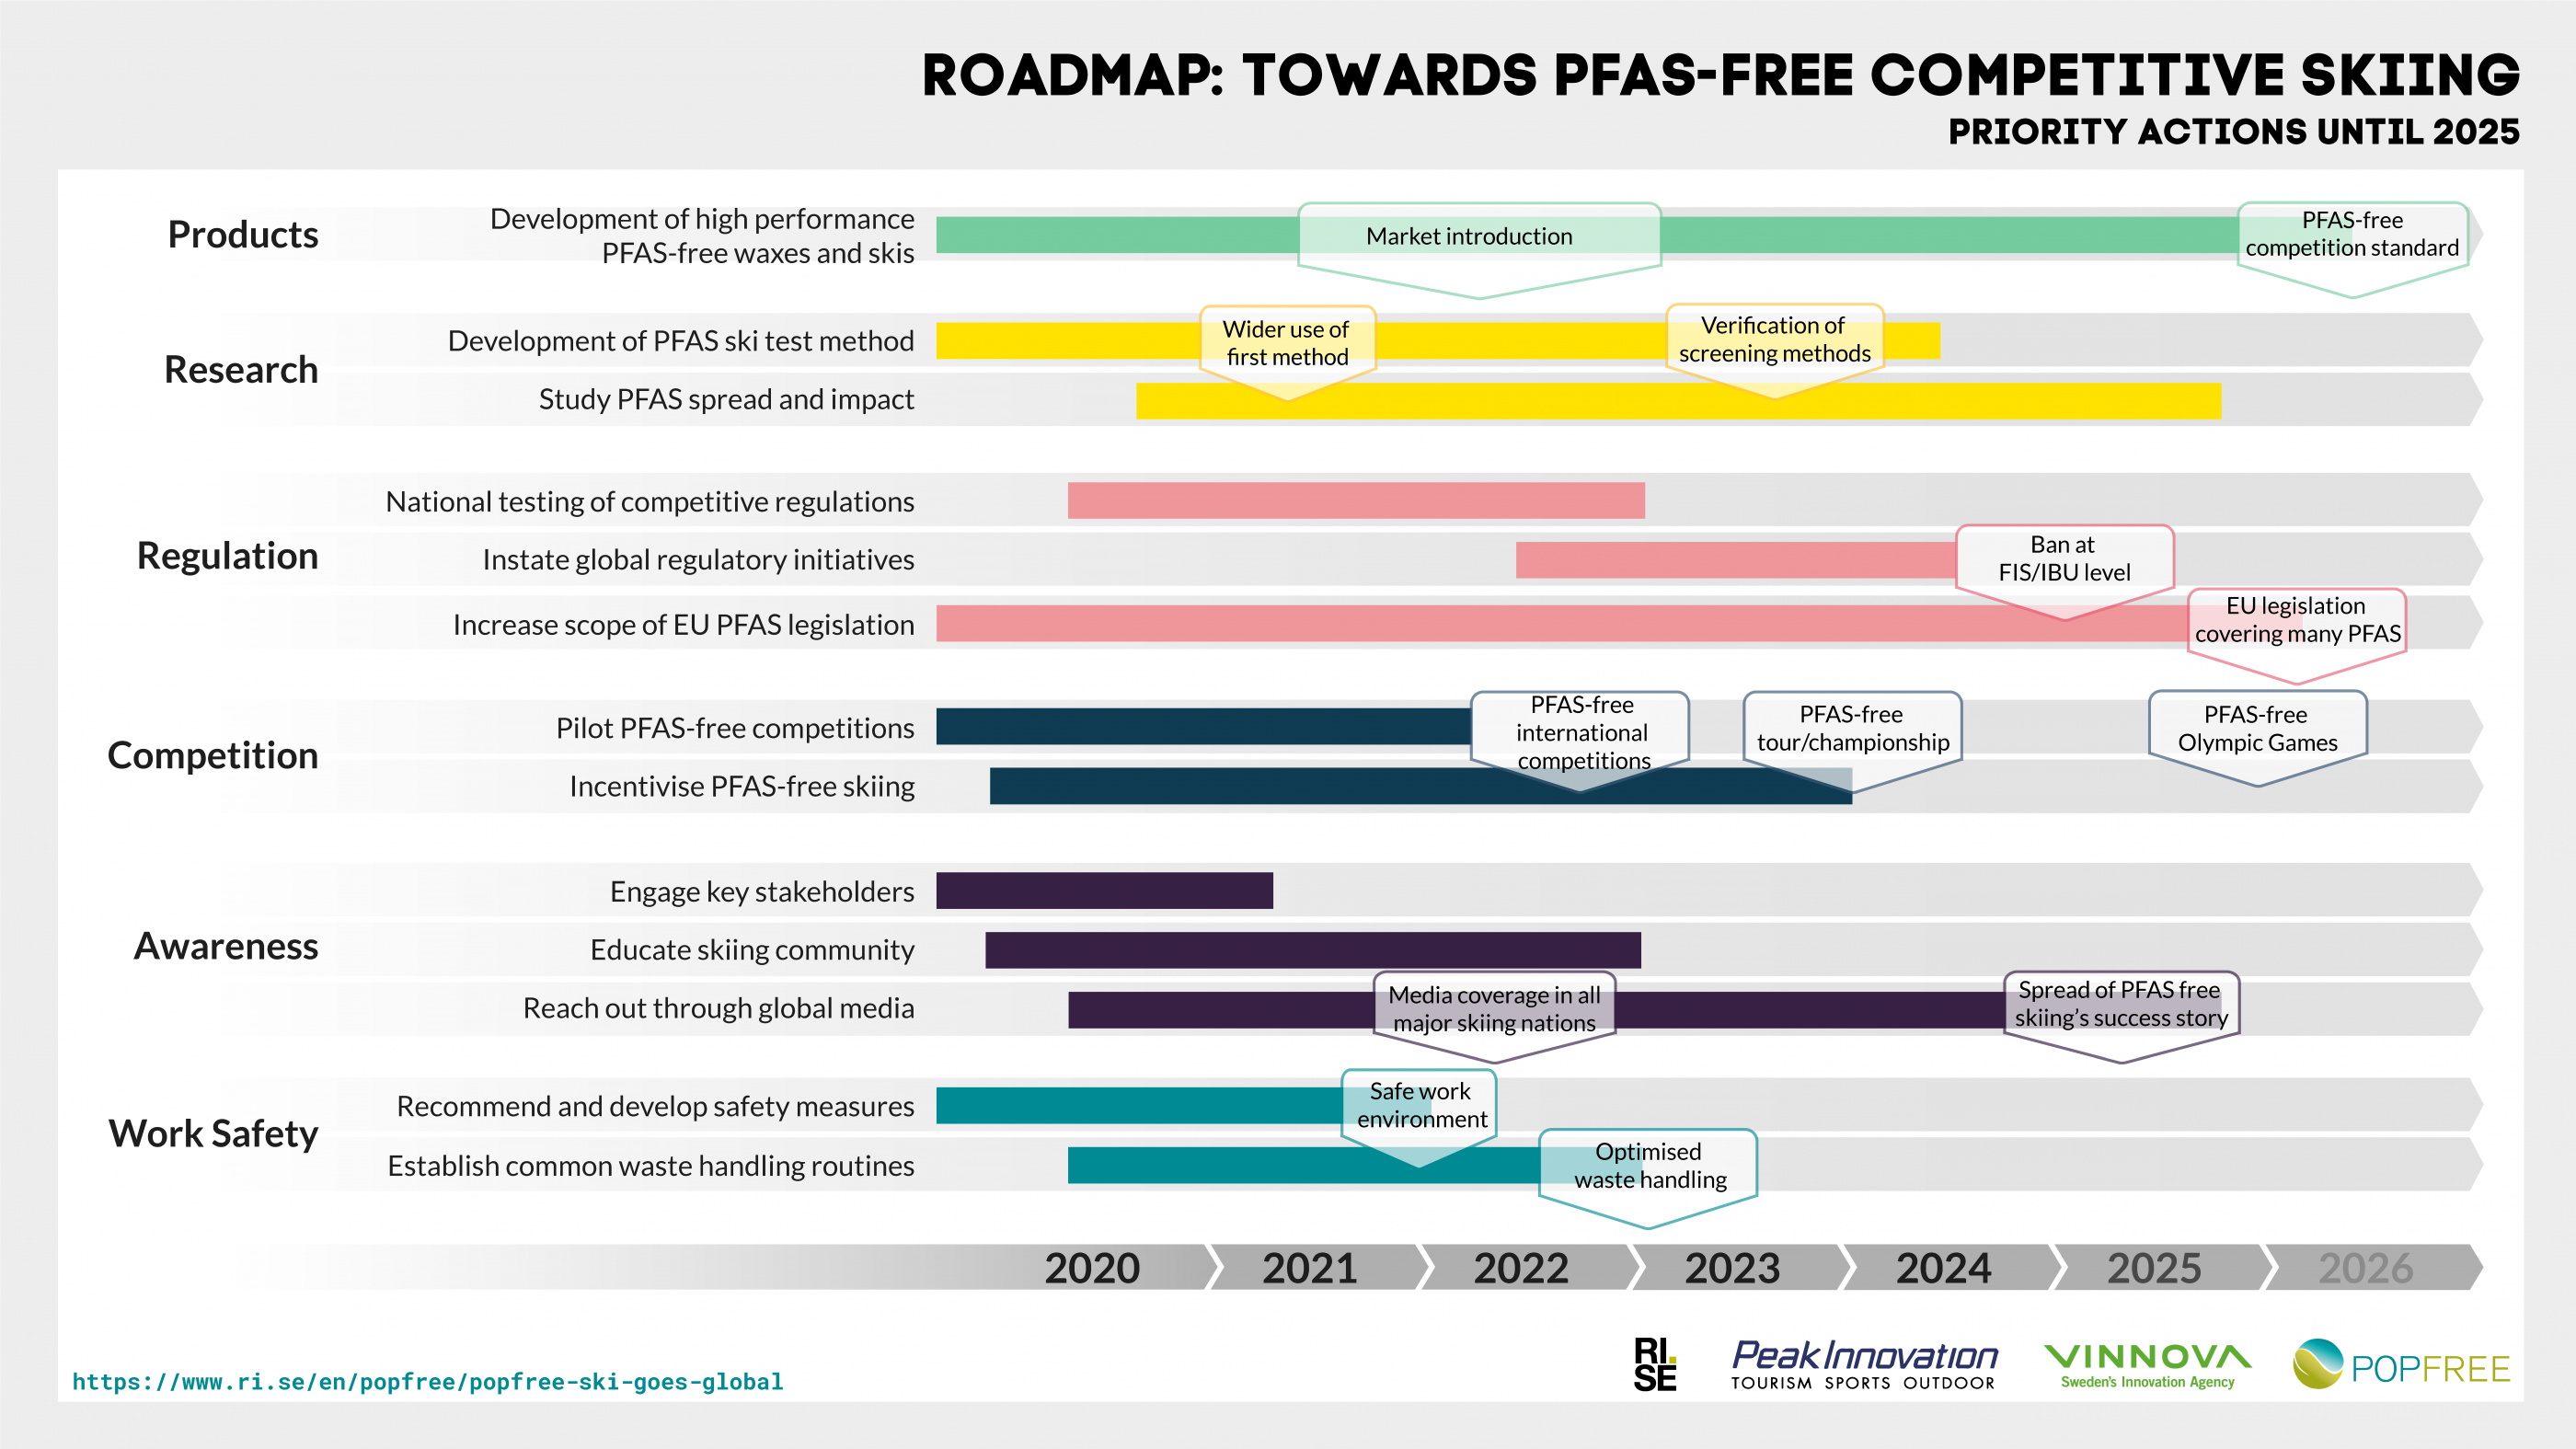 Roadmap towards PFAS-free competitive skiing. Priority actions until 2015